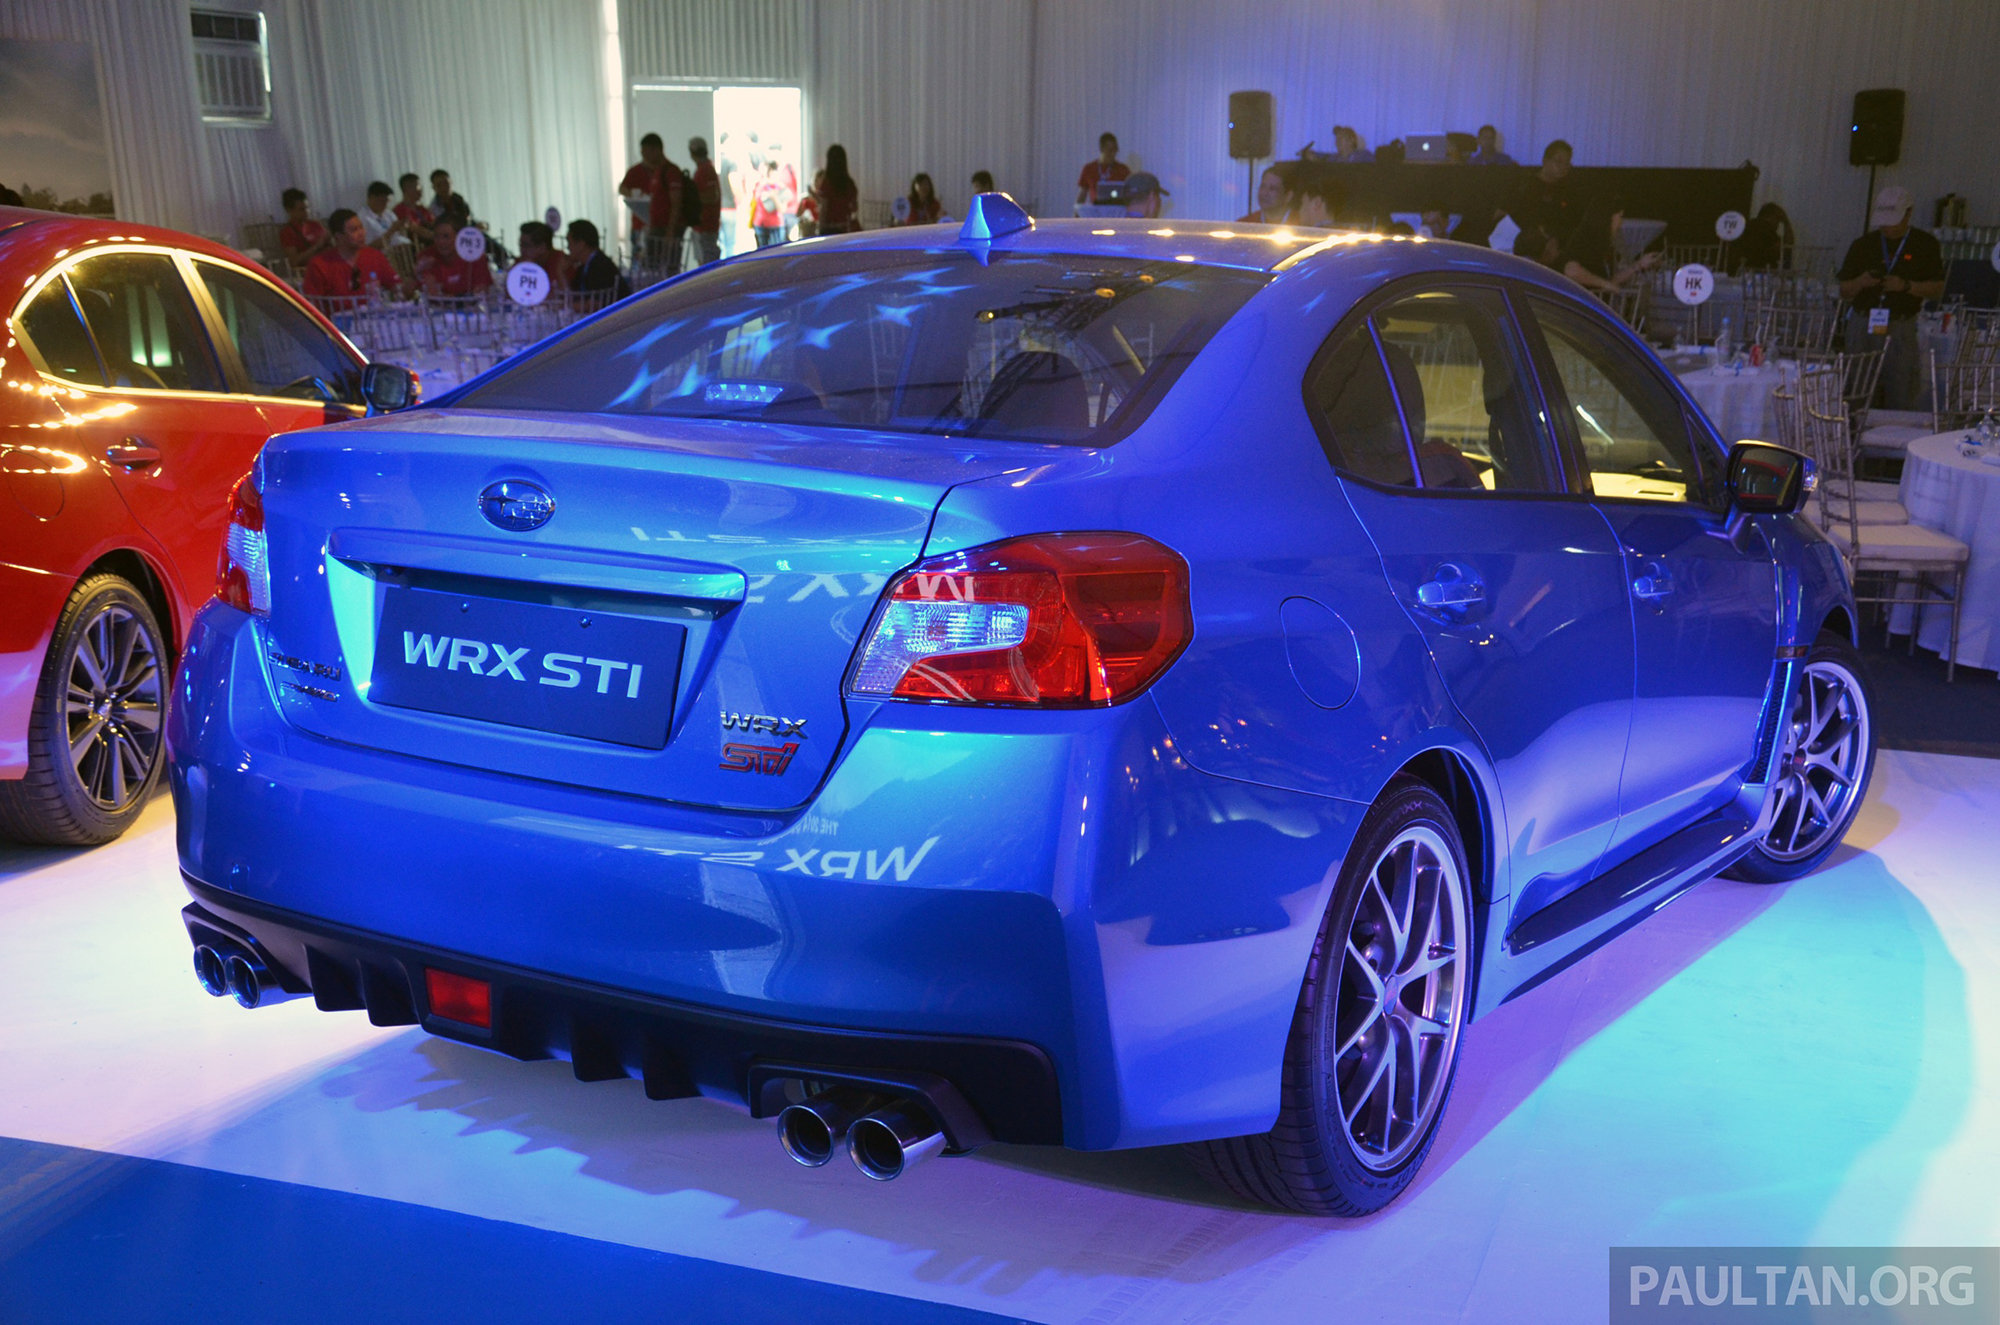 2014 Wrx Sti >> Subaru WRX and WRX STI launched in the region, sports sedans to arrive in Malaysia from July ...